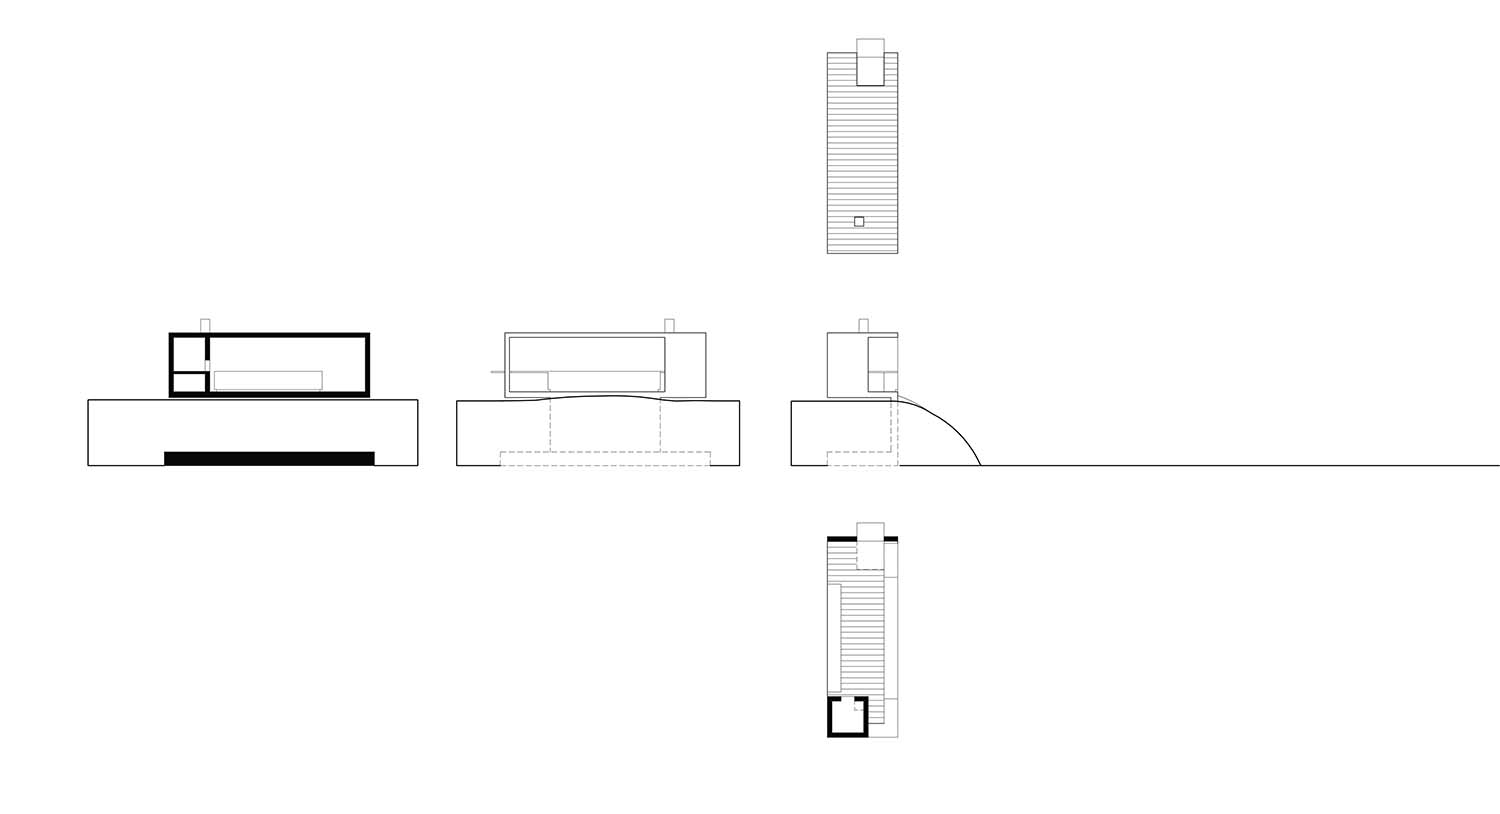 Outdoor kitchen (pavilion): plan, sections and facades Lina Malfona}